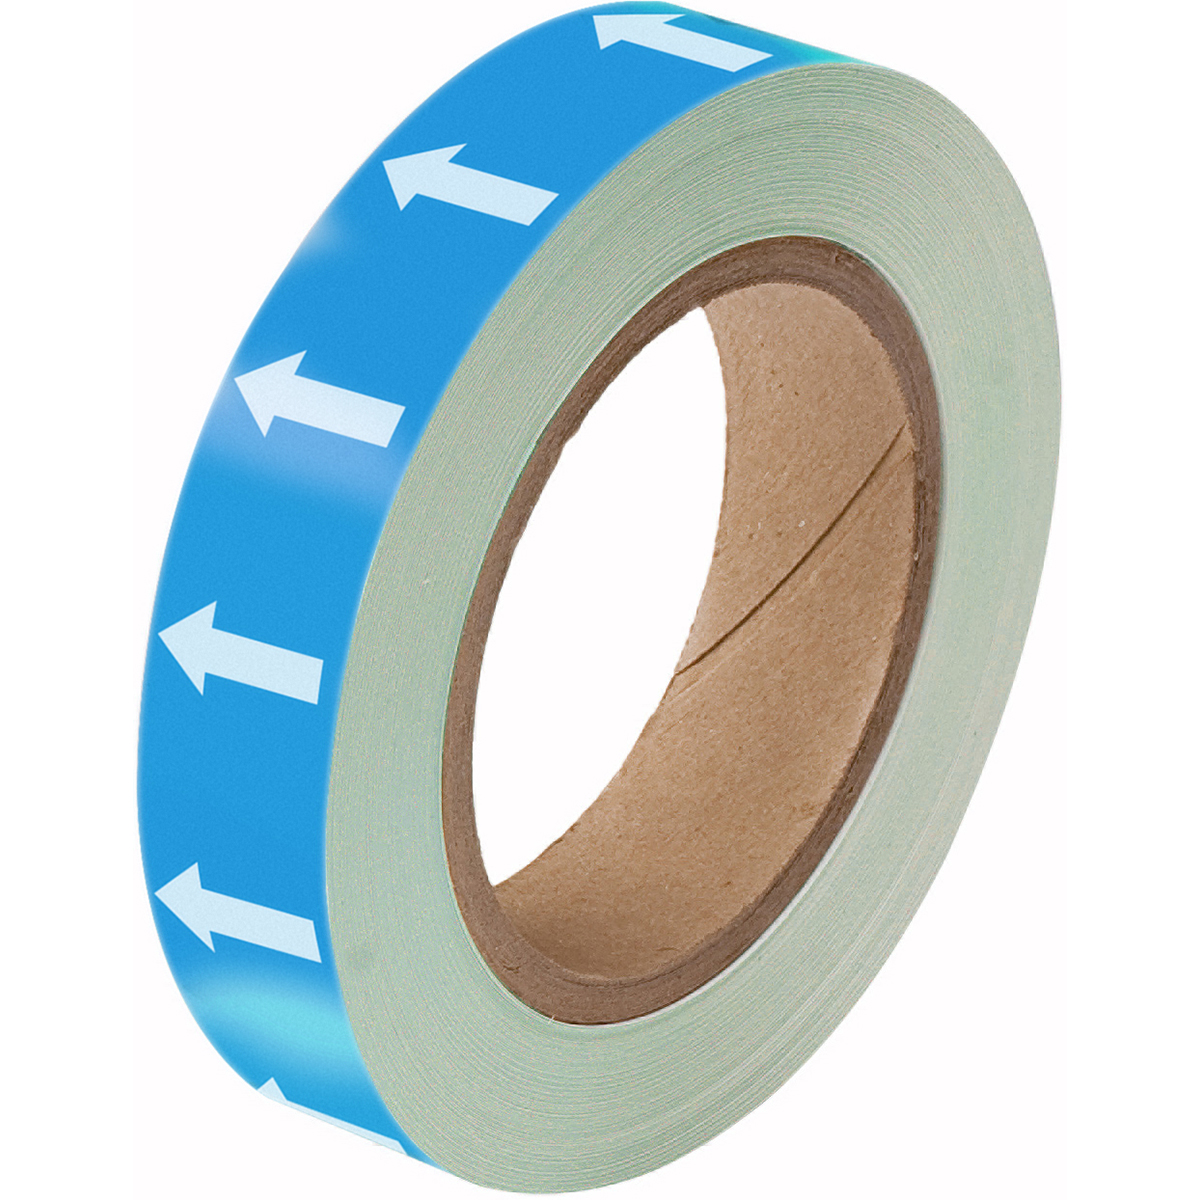 White on Blue Directional arrow Tape